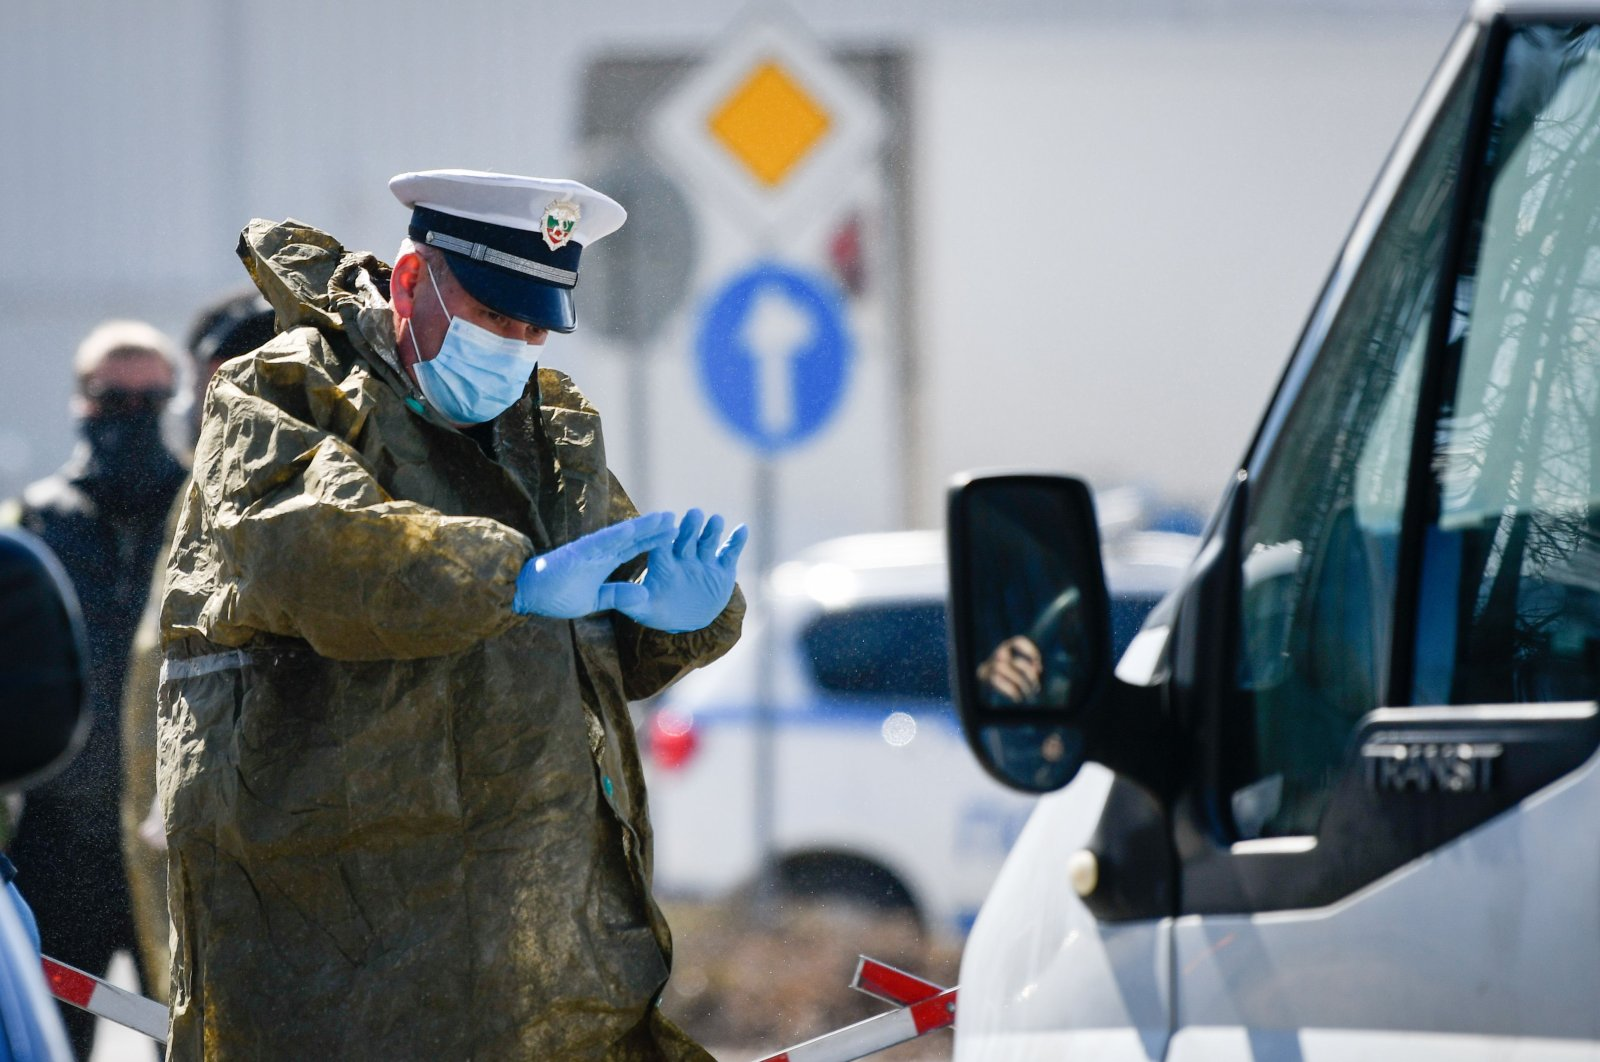 A police officer wearing a protective suit gestures at a checkpoint at the entrance of the Bansko ski resort in Bulgaria, March 18, 2020. (AFP Photo)